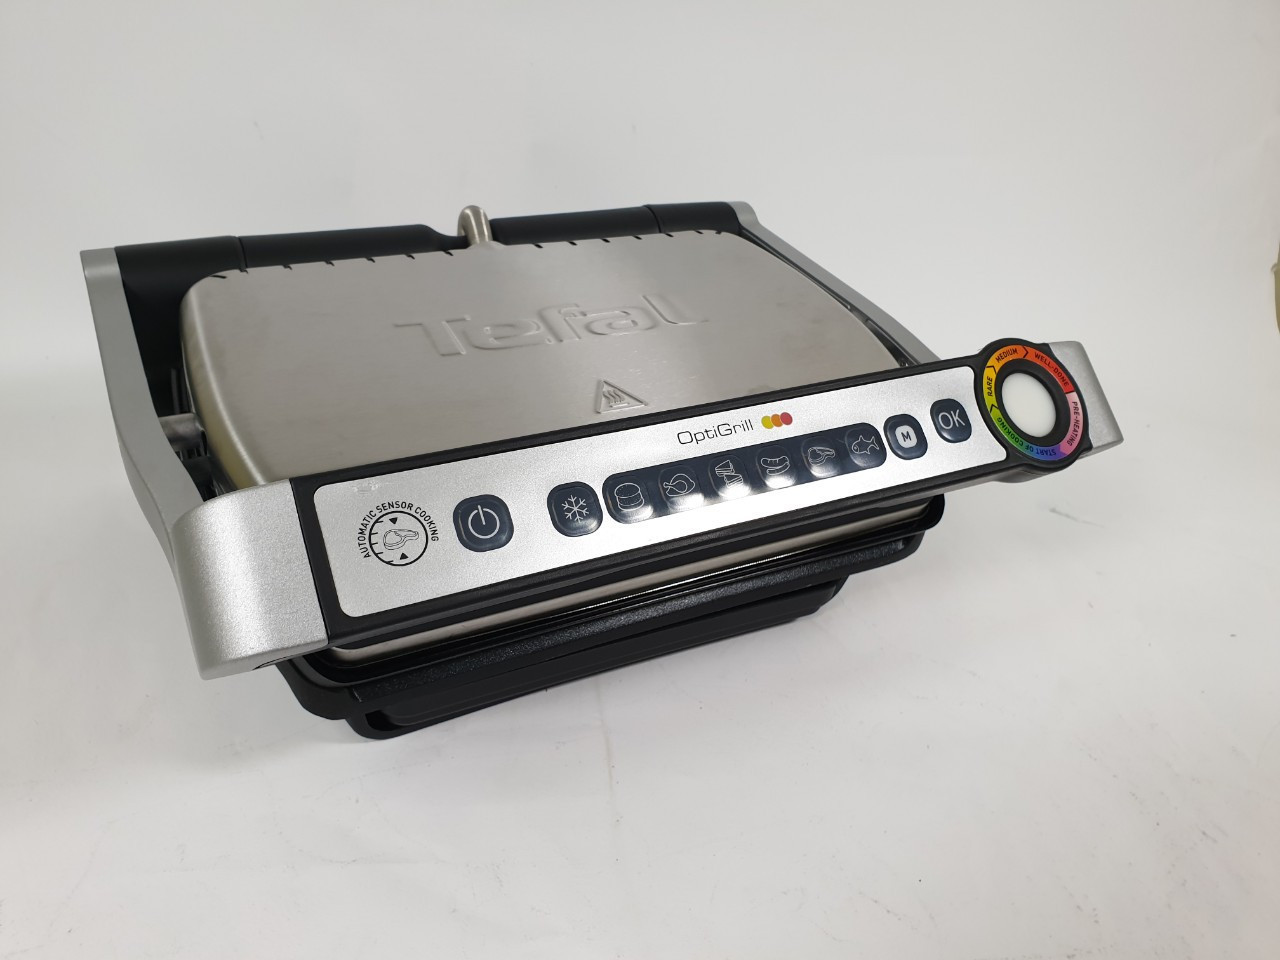 Гриль Tefal Optigrill GC702D16